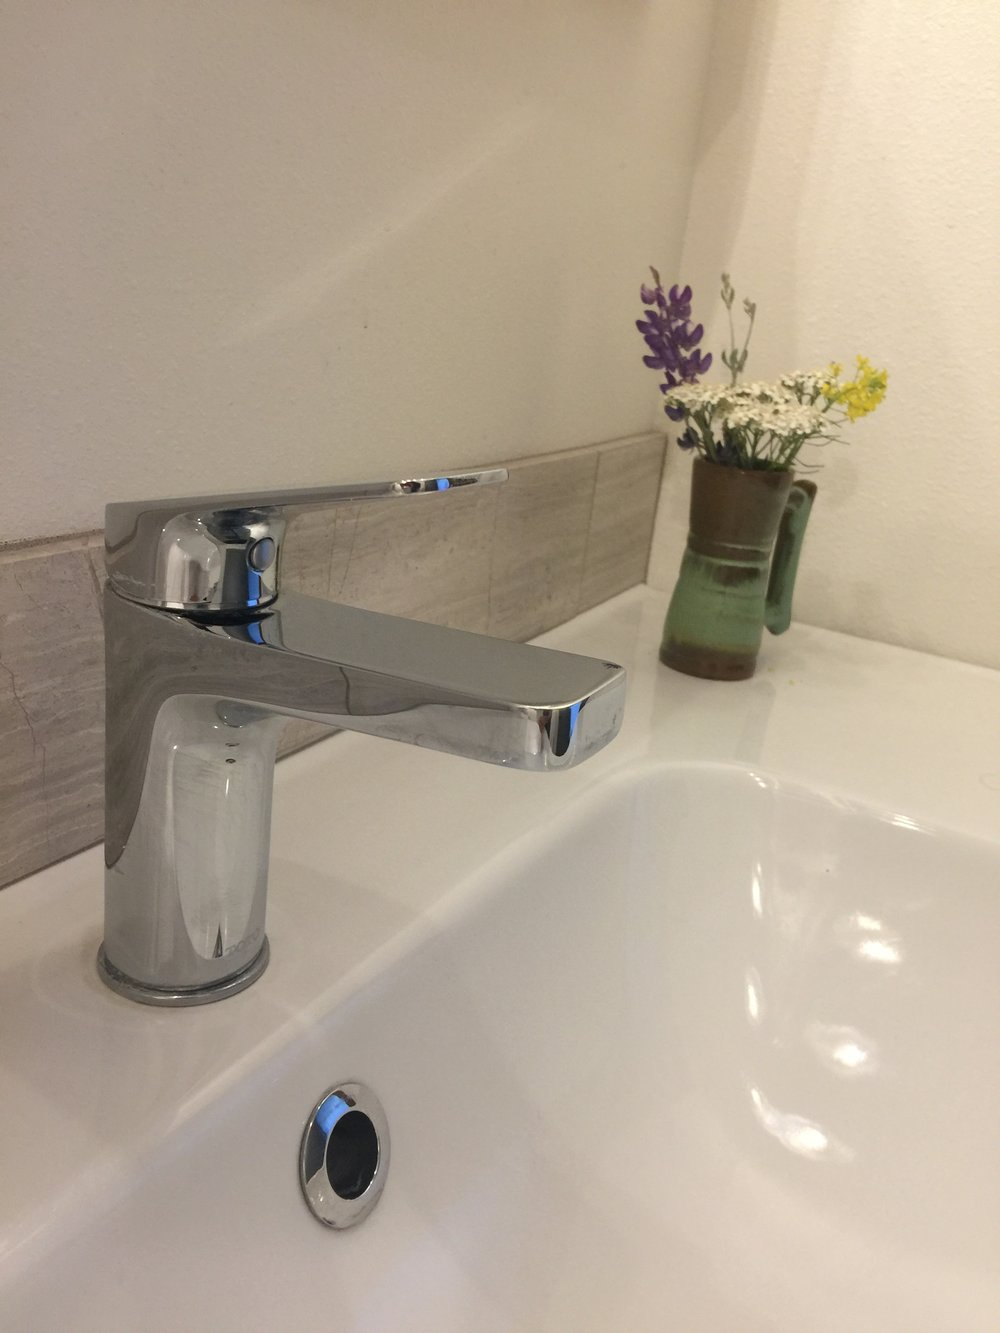 We chose the new Toto Oberon faucet, which is WaterSense Certified and has a maximum flow rate of 1.5 gpm. We paired this high-quality faucet with a low-cost Ikea sink. If you're designing a bathroom on a budget, it's wise to invest in quality faucets and fixtures and save money on the sink.